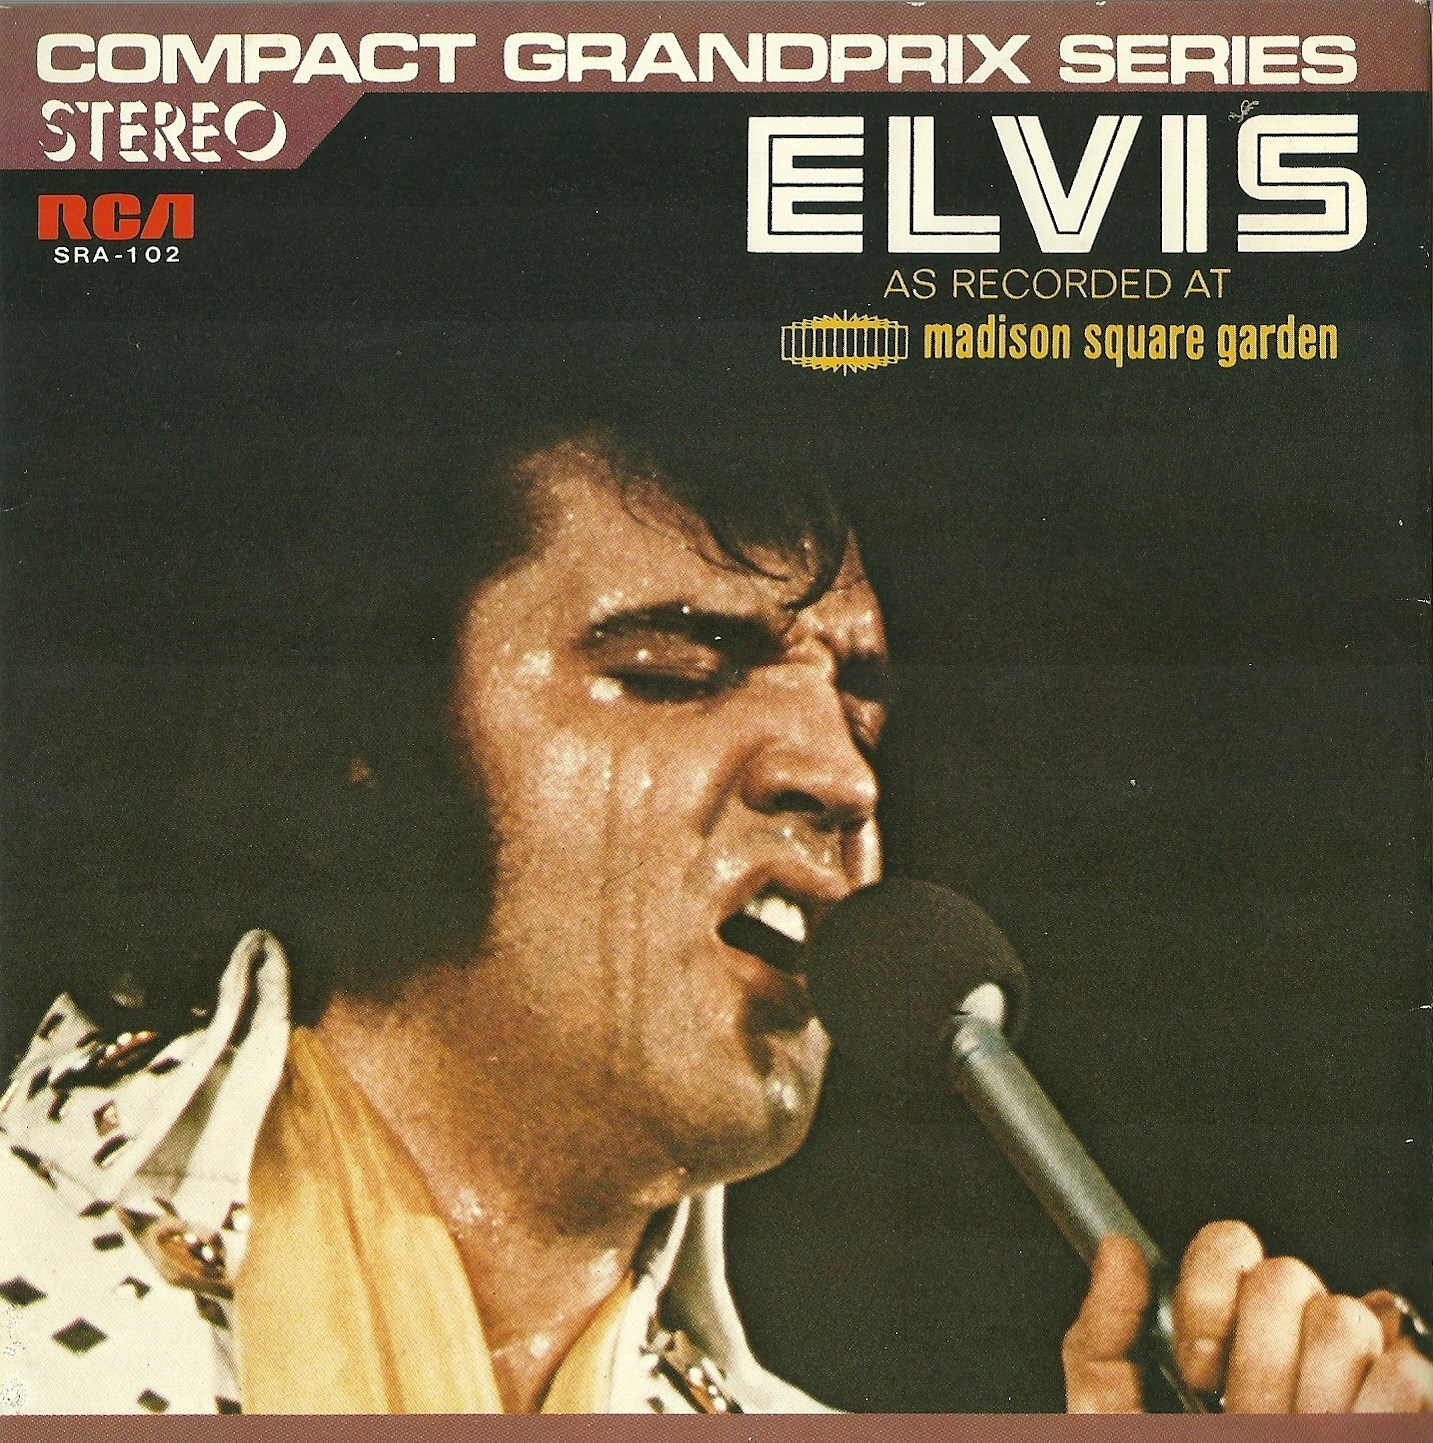 ELVIS - AS RECORDED AT MADISON SQUARE GARDEN Sra-102ayiqug